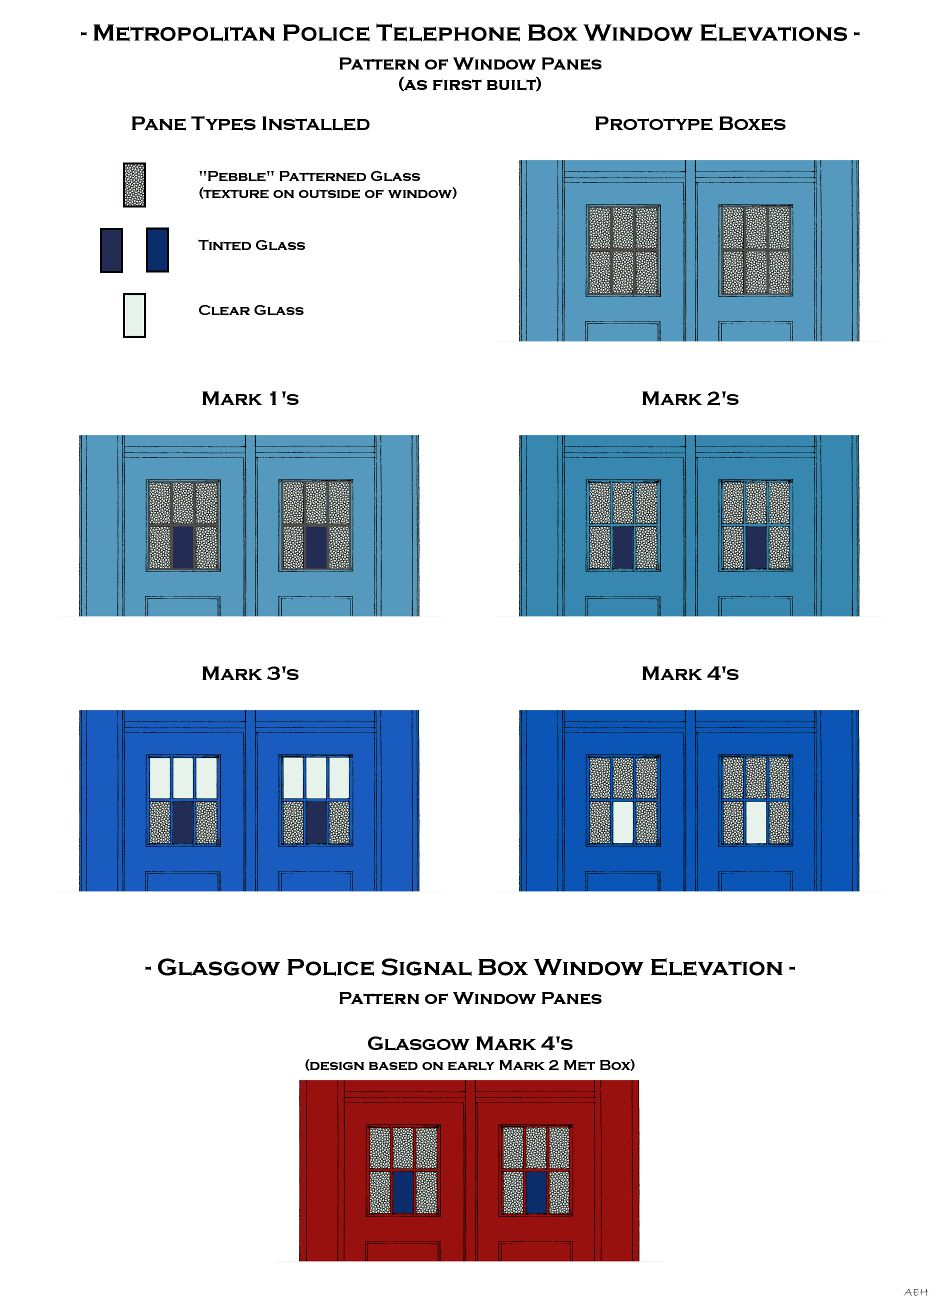 Met_&_Glasgow_Window_Pane_Pattern_Elevations-Reduced_Size_Chart.jpg